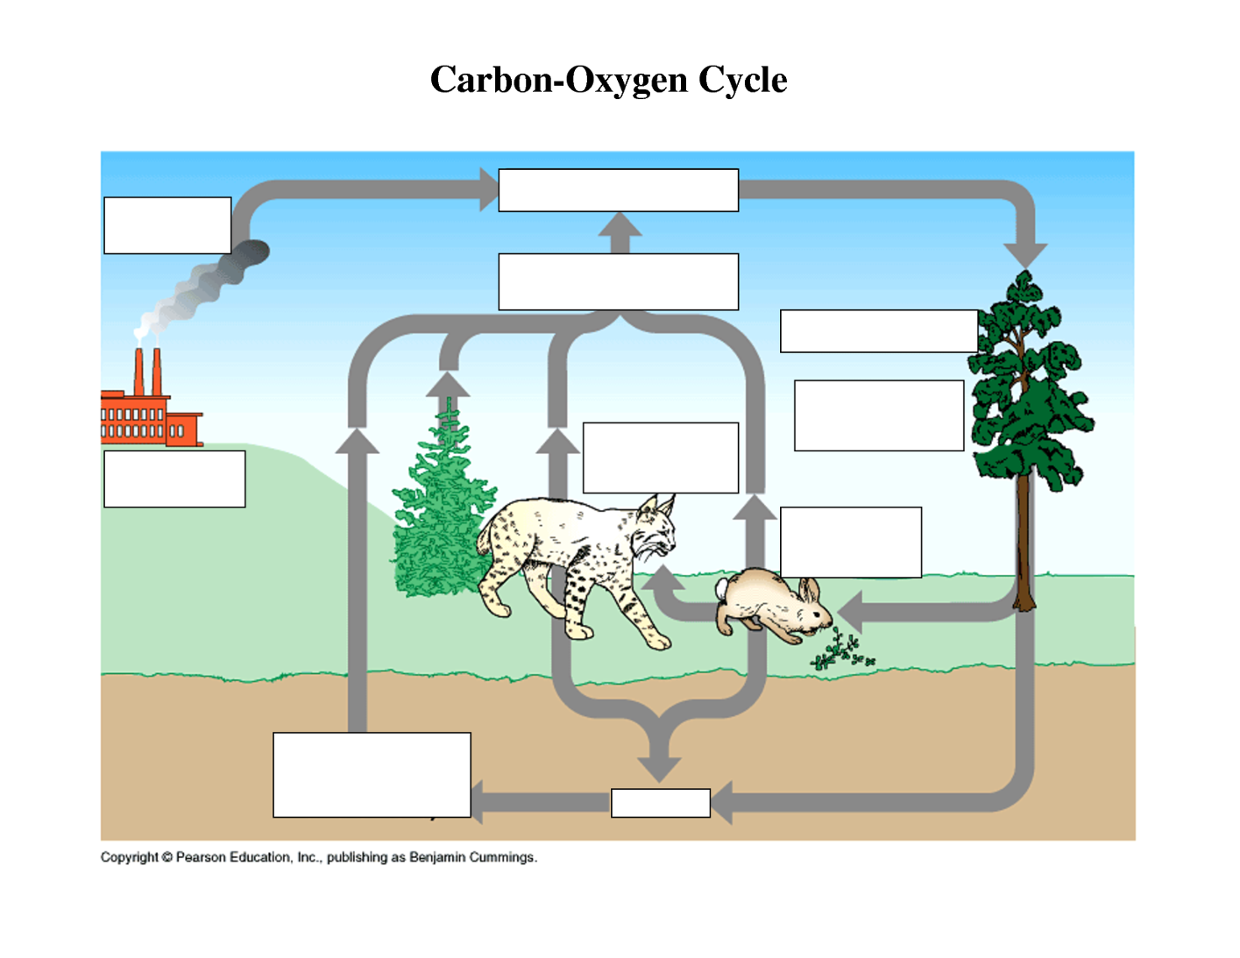 Worksheets Carbon Cycle Worksheets carbon cycle thinglink 5 years ago 870